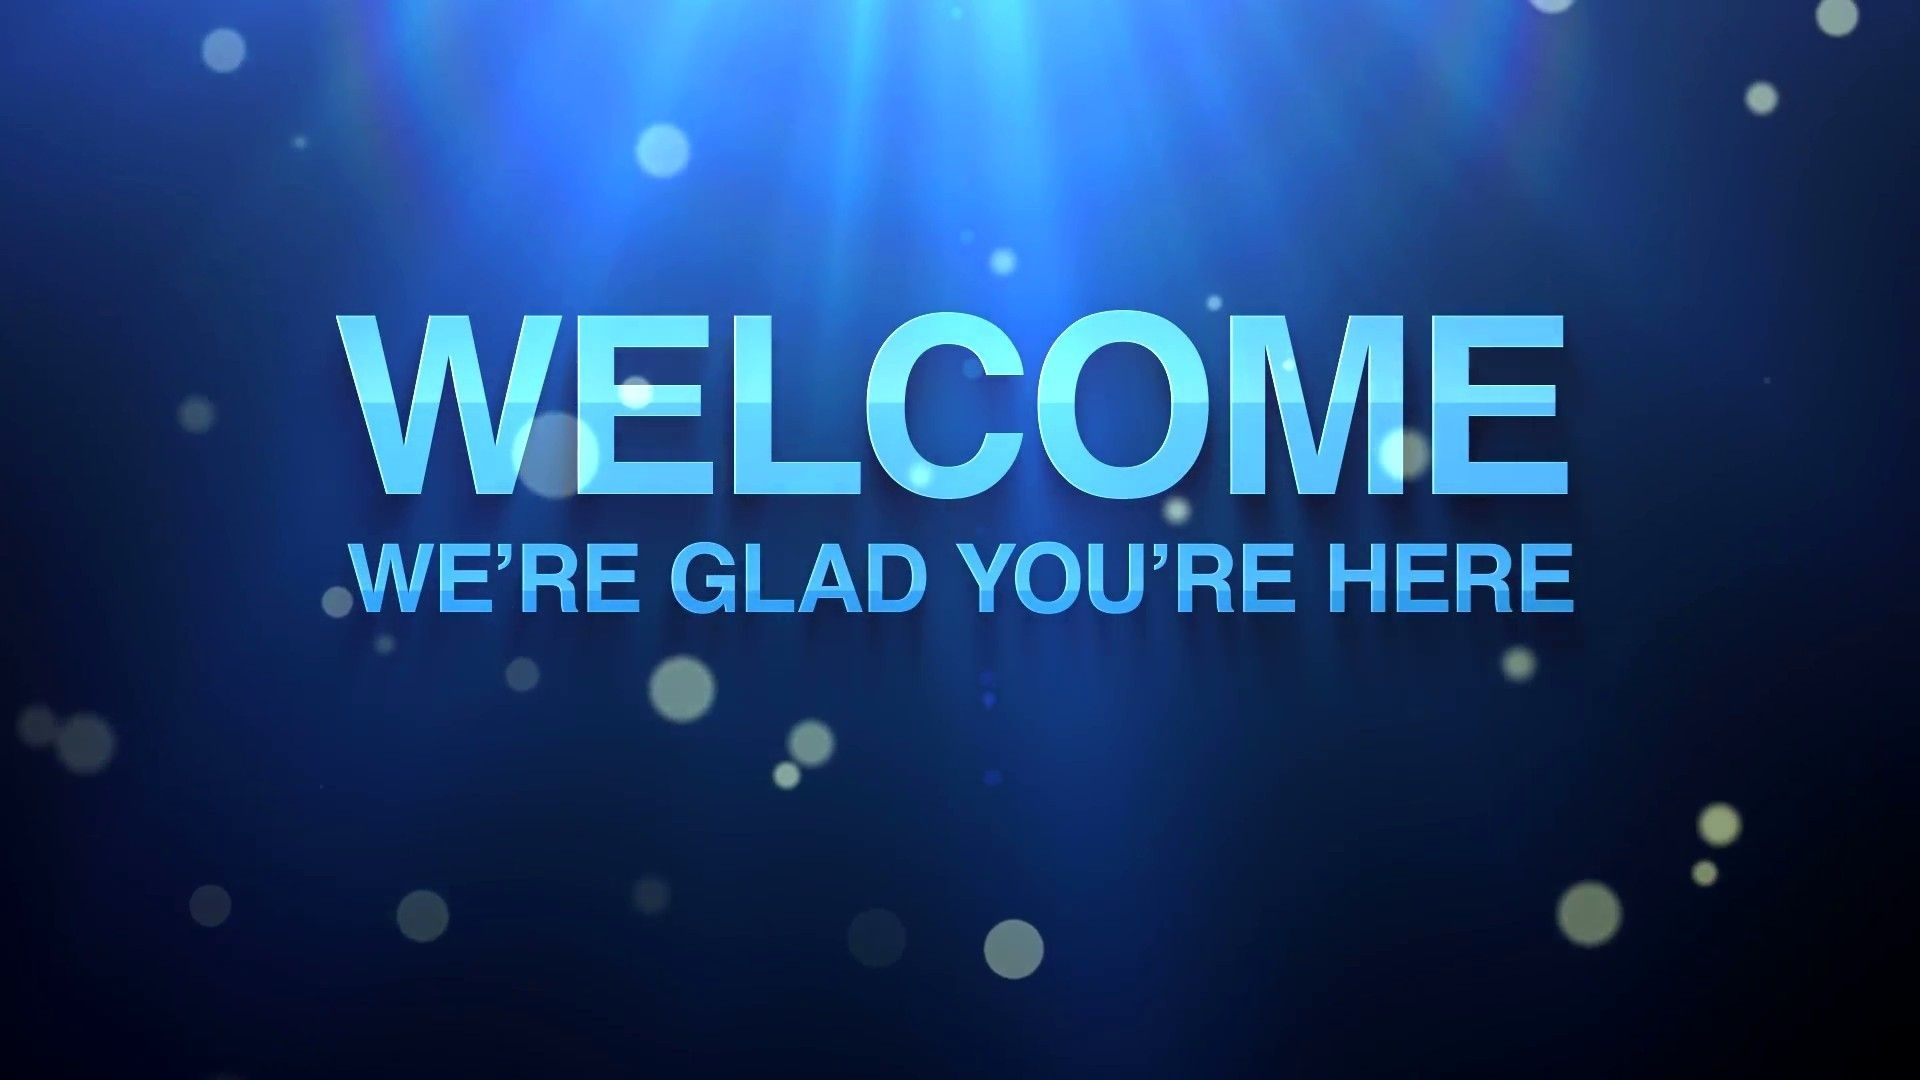 Welcome wallpaper for computer